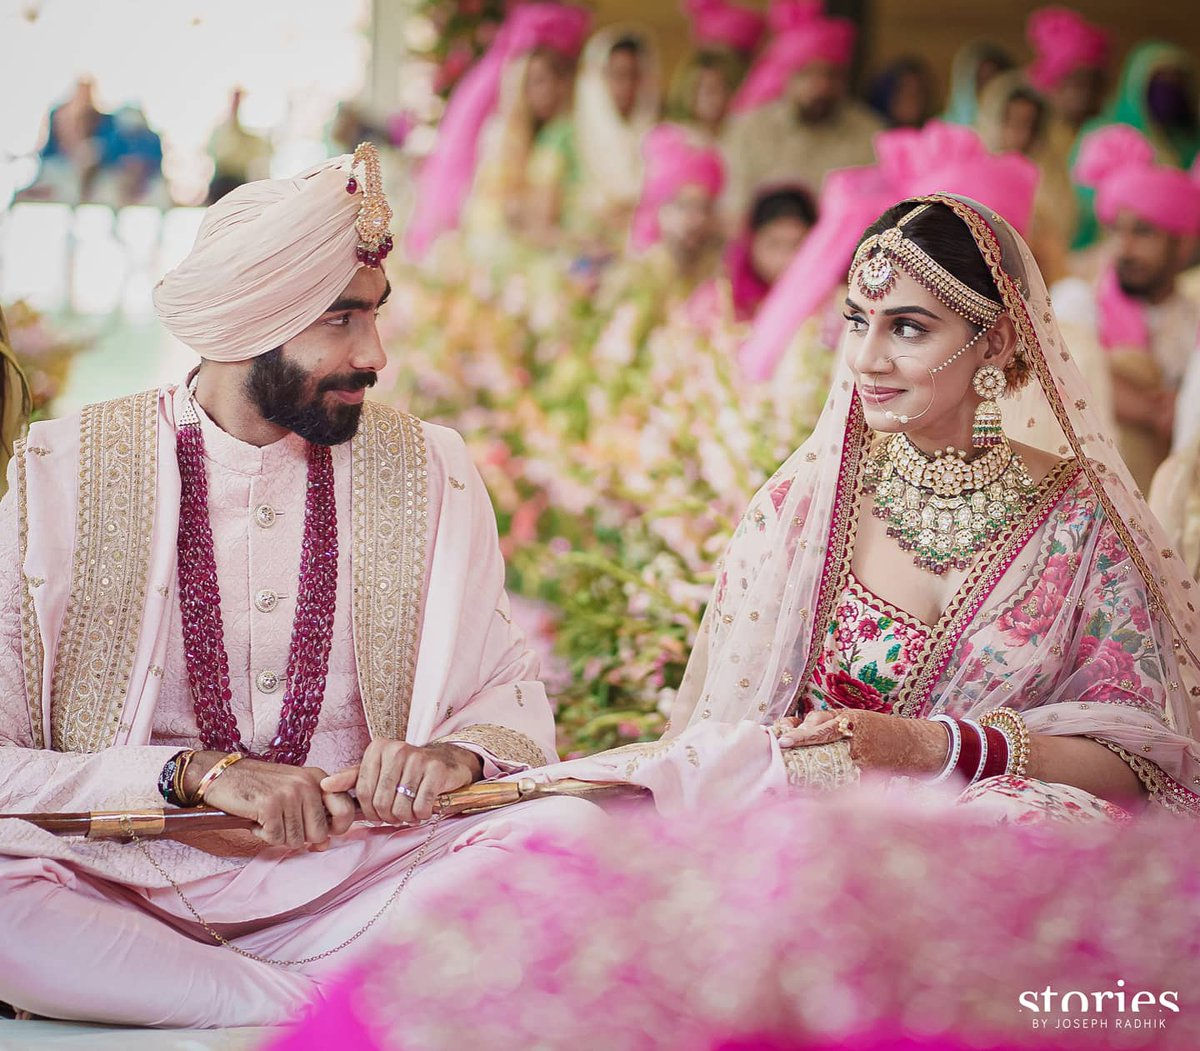 """Love, if it finds you worthy, directs your course.""  Steered by love, we have begun a new journey together. Today is one of the happiest days of our lives and we feel blessed to be able to share the news of our wedding and our joy with you.  Jasprit & Sanjana https://t.co/EQuRUNa0Xc"